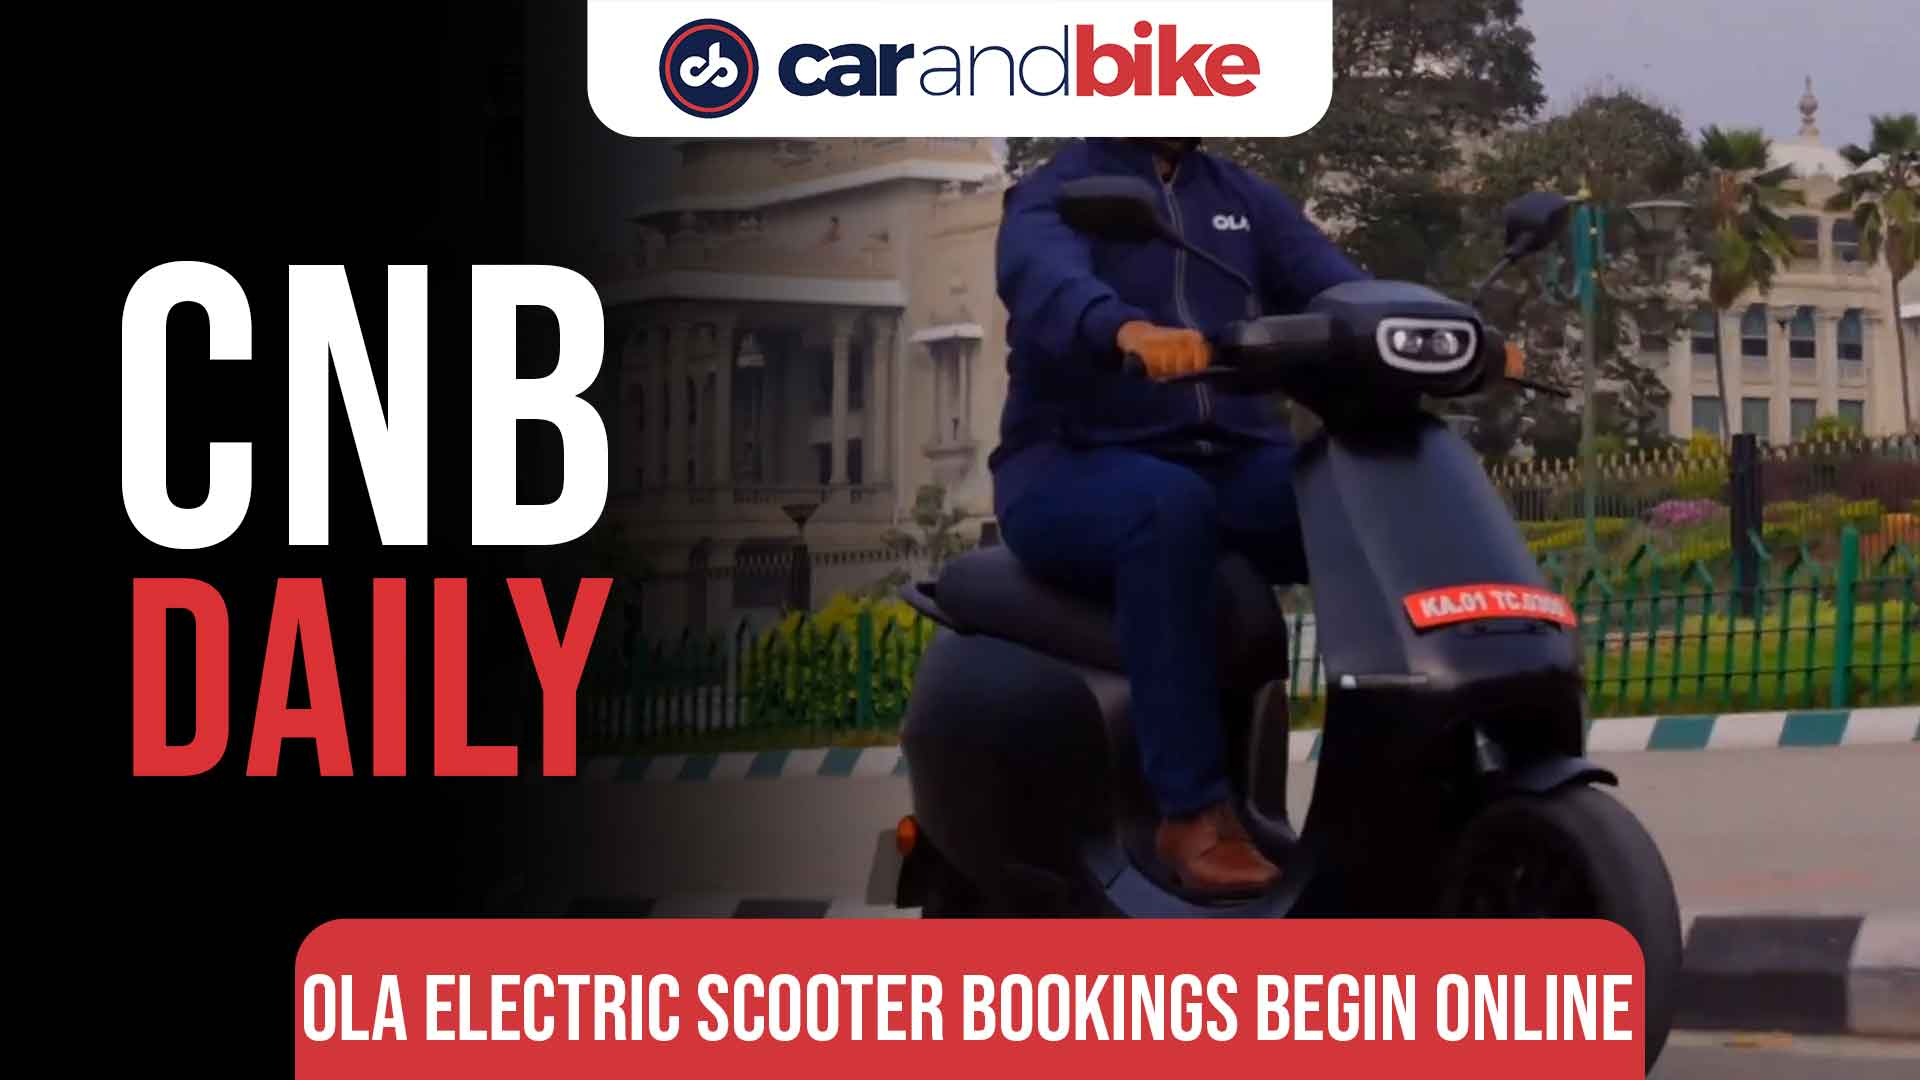 Ola Electric begins taking online bookings for its scooter